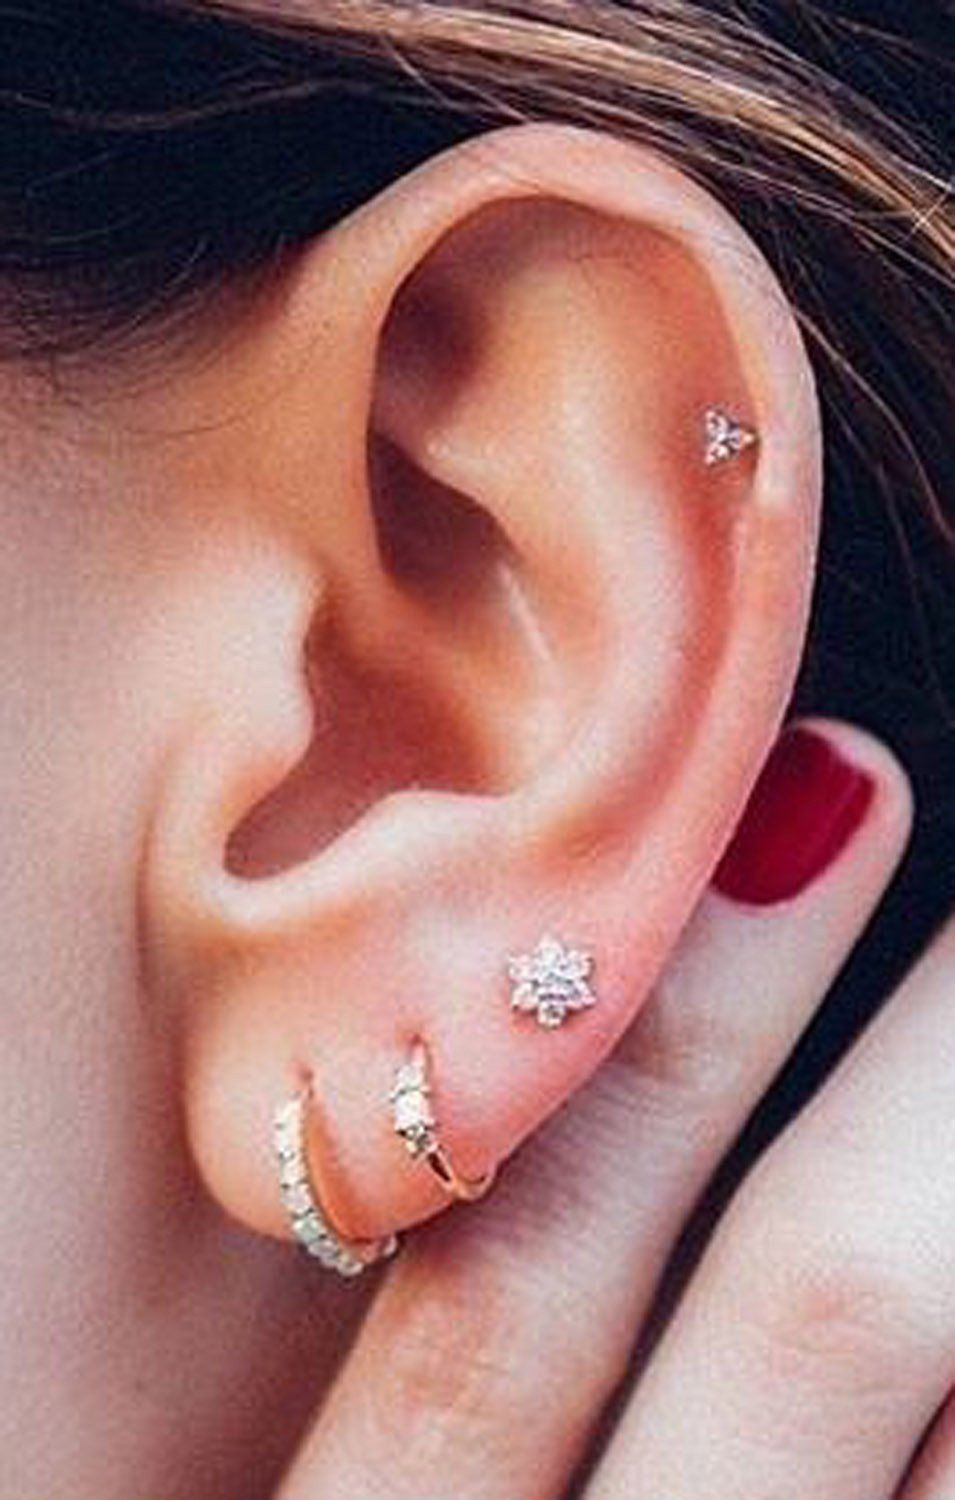 Double piercing ideas  Steal These  Ear Piercing Ideas  Cartilage piercing stud